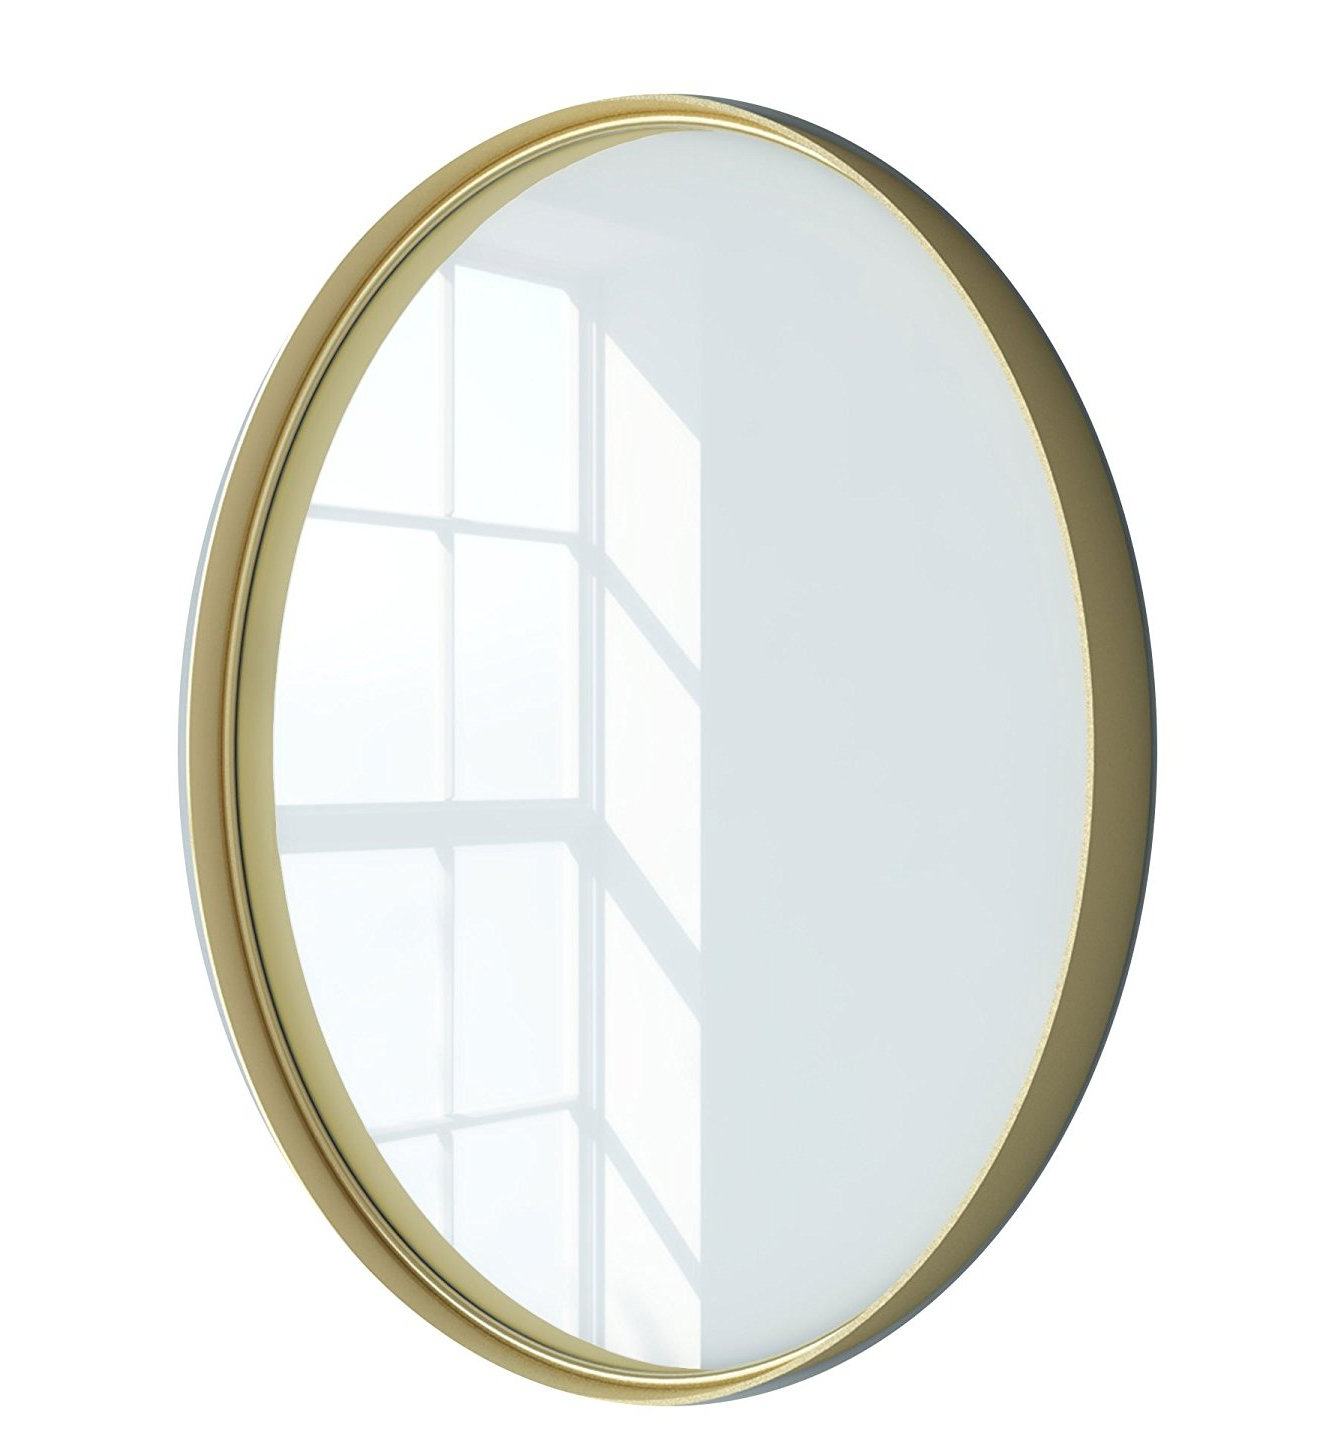 Tanner Accent Mirrors Throughout Favorite Buena Vista Accent Mirror (View 13 of 20)